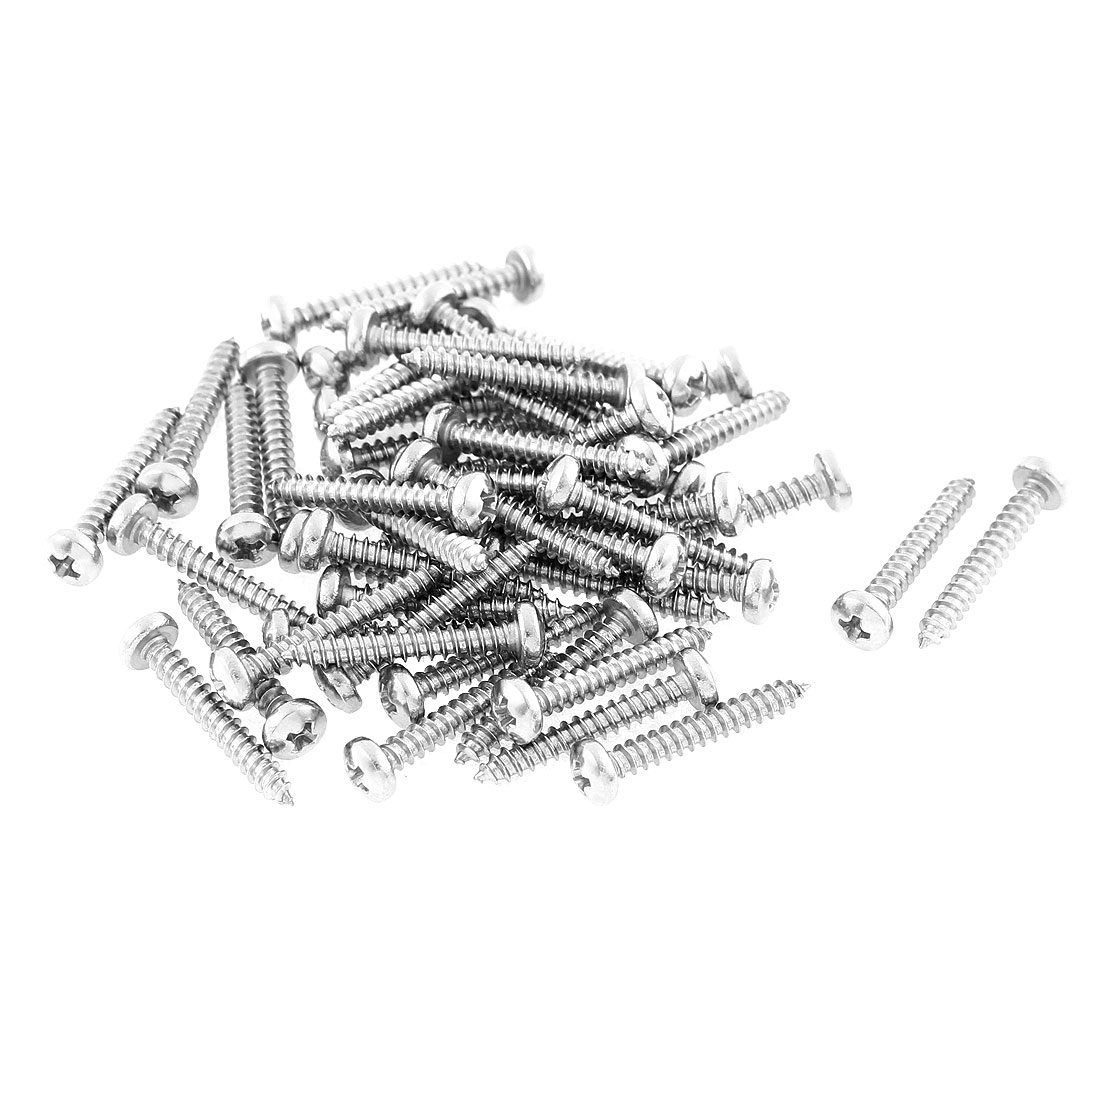 50 Pcs 2.9mmx19mm Stainless Steel Phillips Round Head Sheet Self Tapping Screws